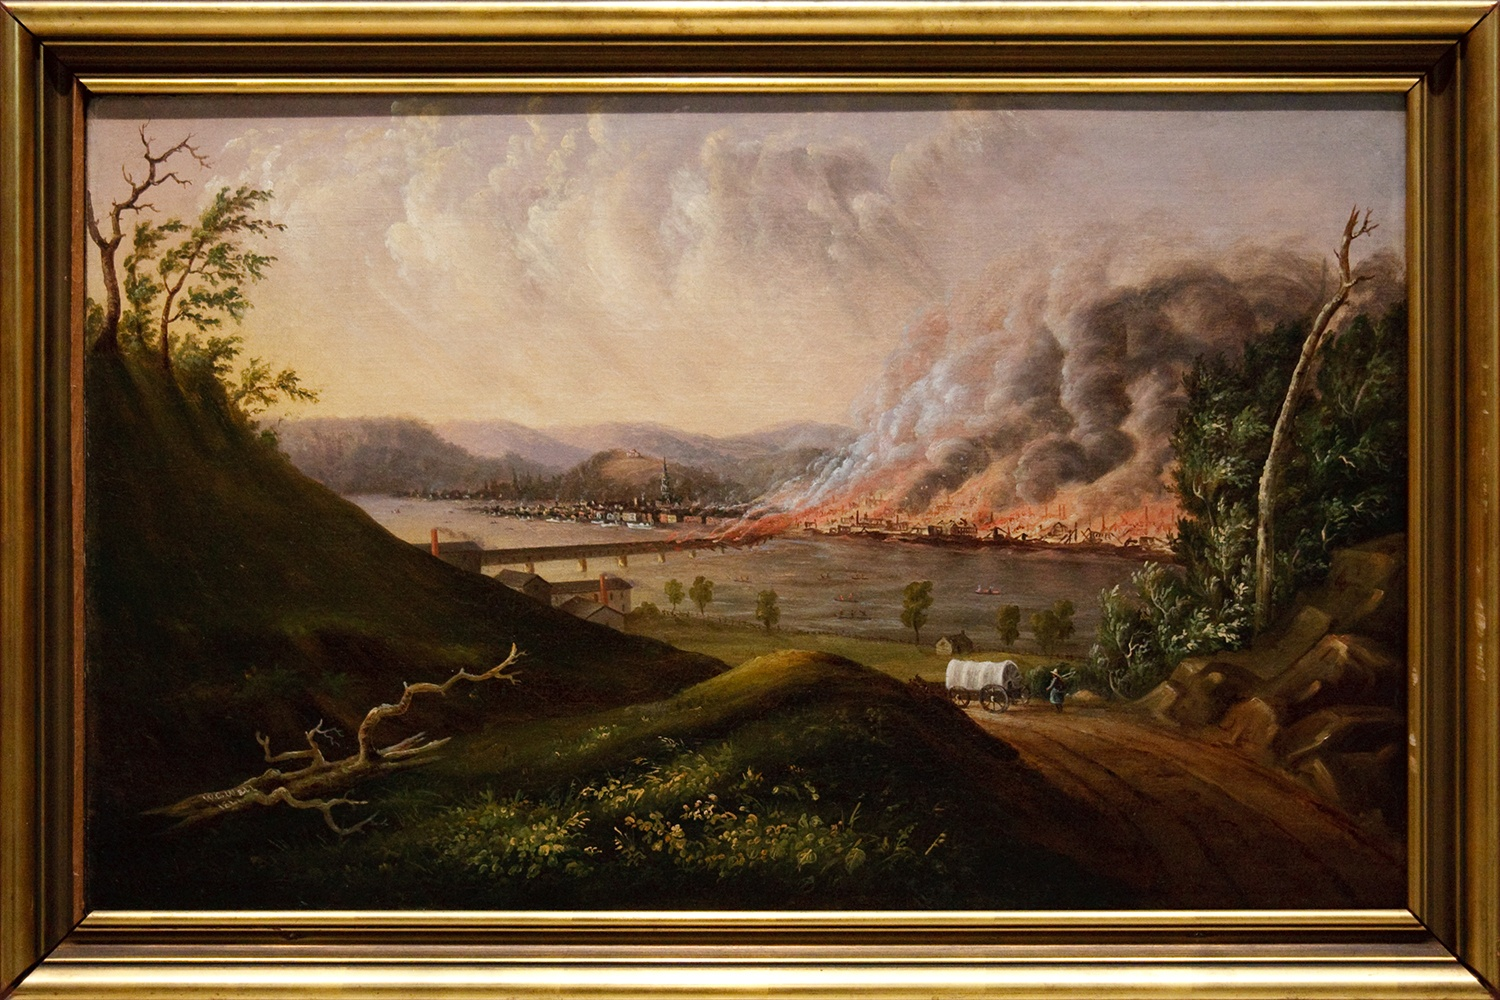 William Coventry Wall, View of the Great Fire of Pittsburgh, oil on canvas, 1846. Courtesy of Carnegie Museum of Art via a Creative Commons license and Wikipedia Loves Art project.